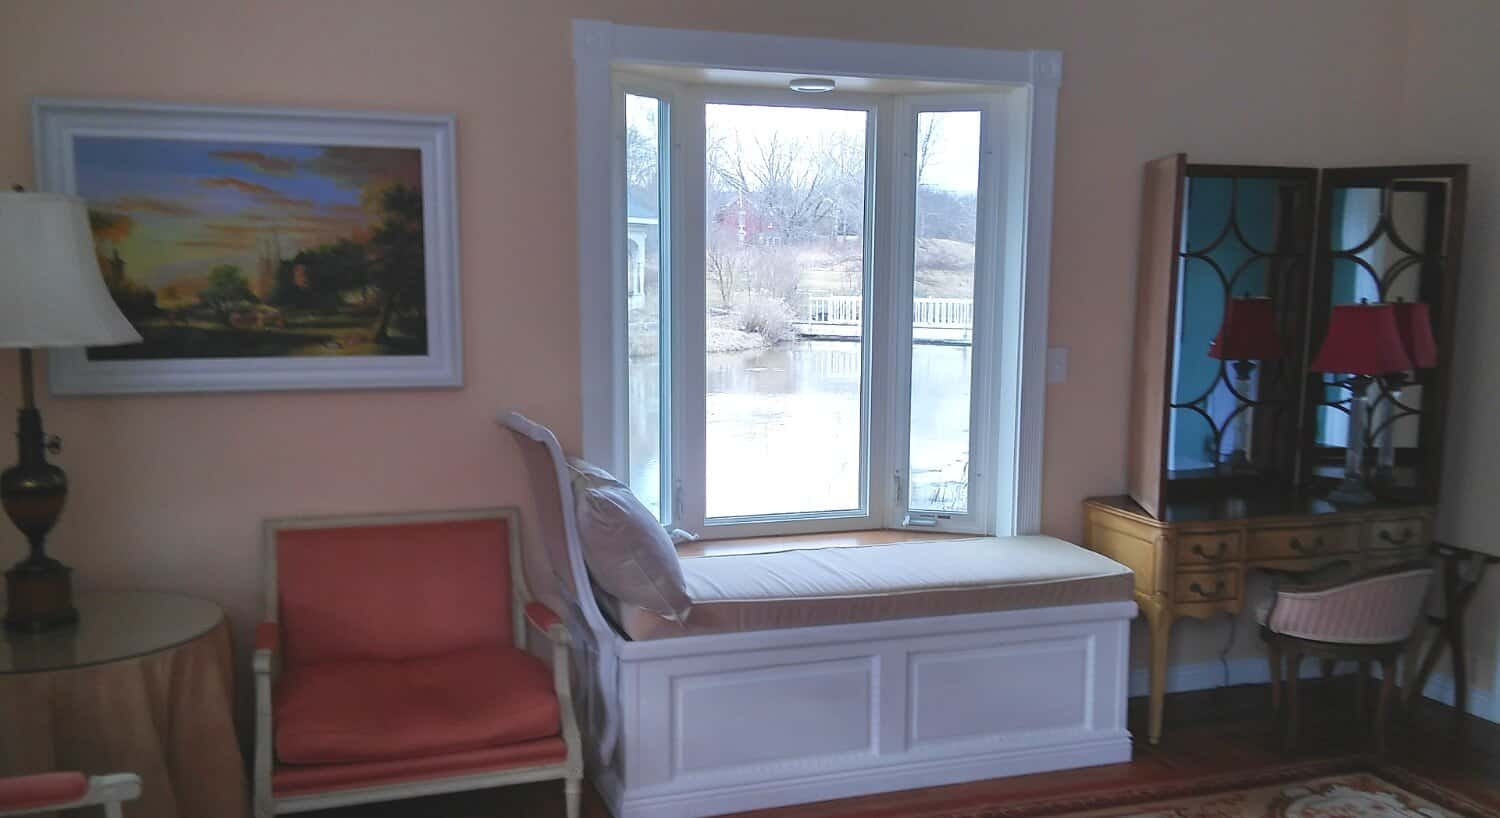 Cozy windowseat in peach room overlooking a pond with a bridge.